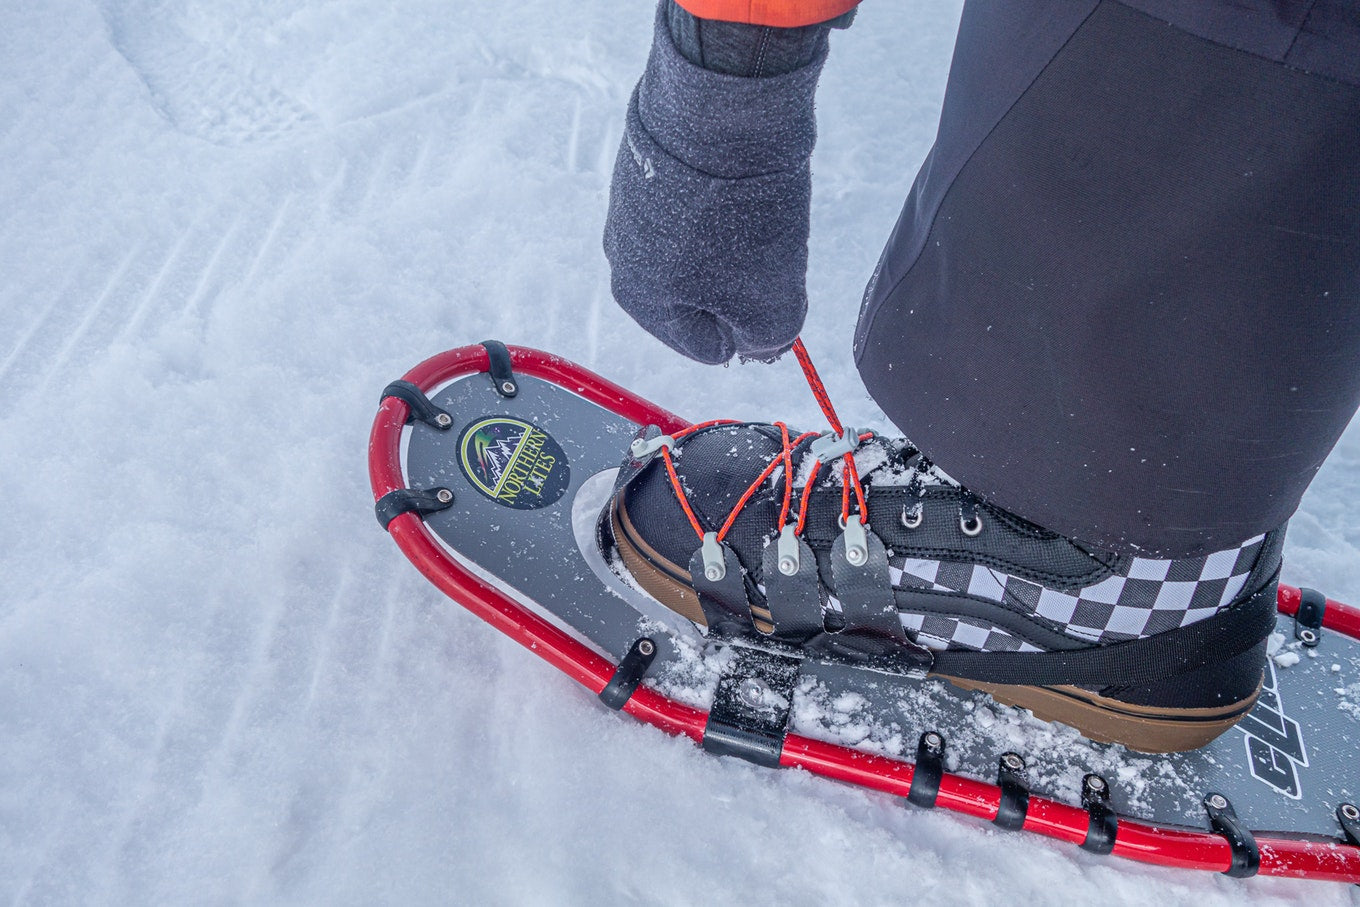 Snowshoe Bindings: Everything You Need to Know